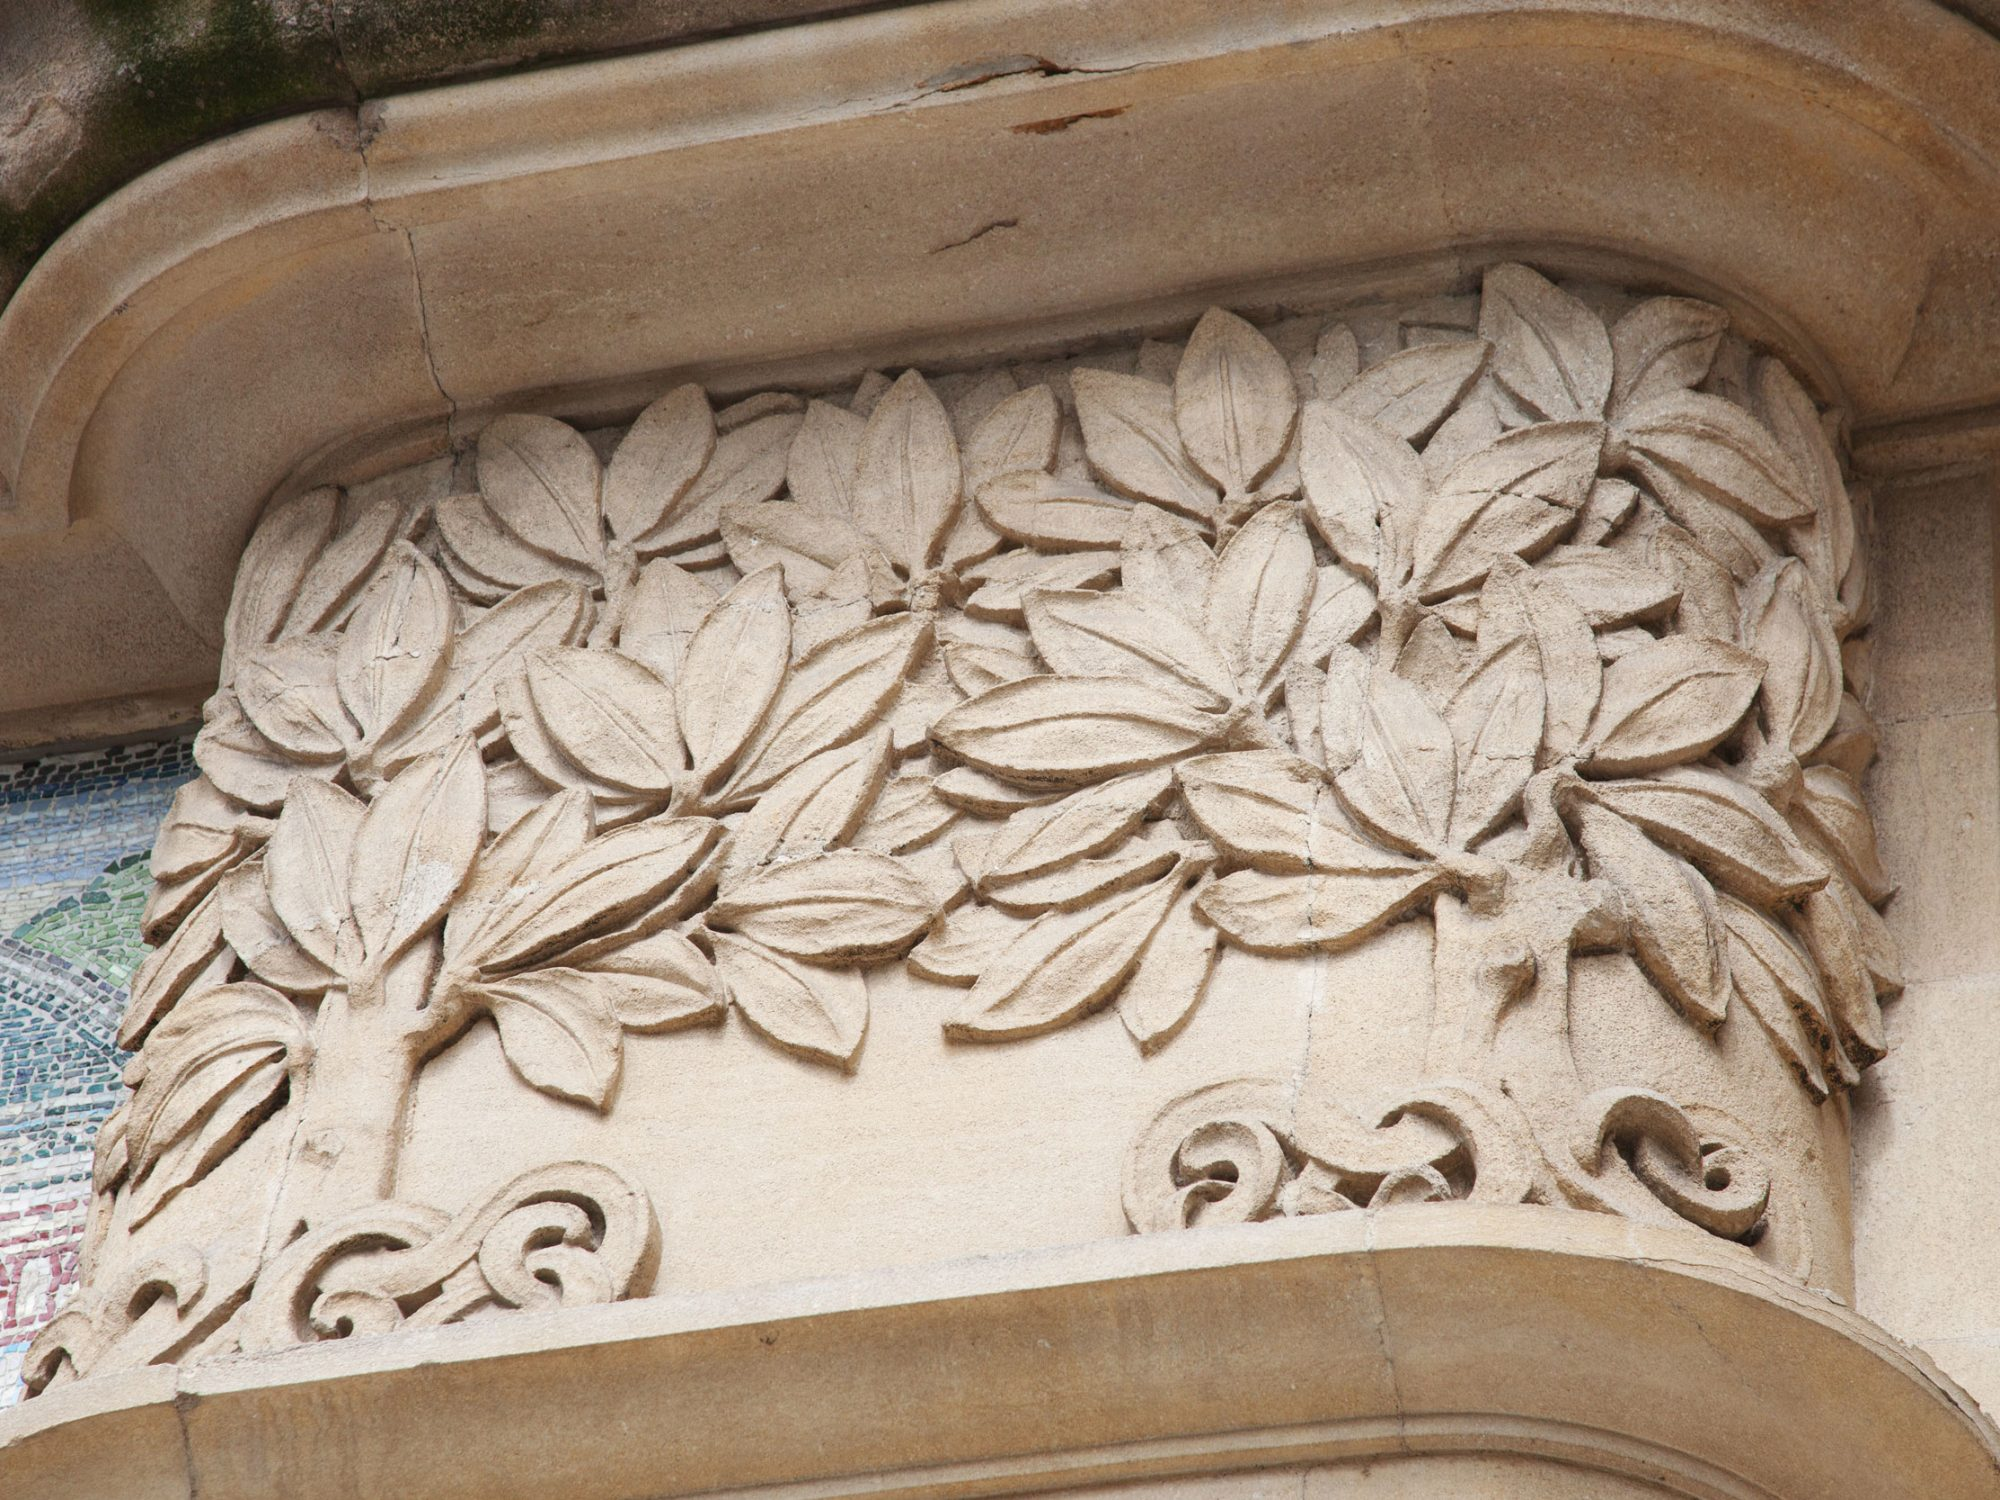 A close up of some trees carved onto the stone facade of the Horniman building